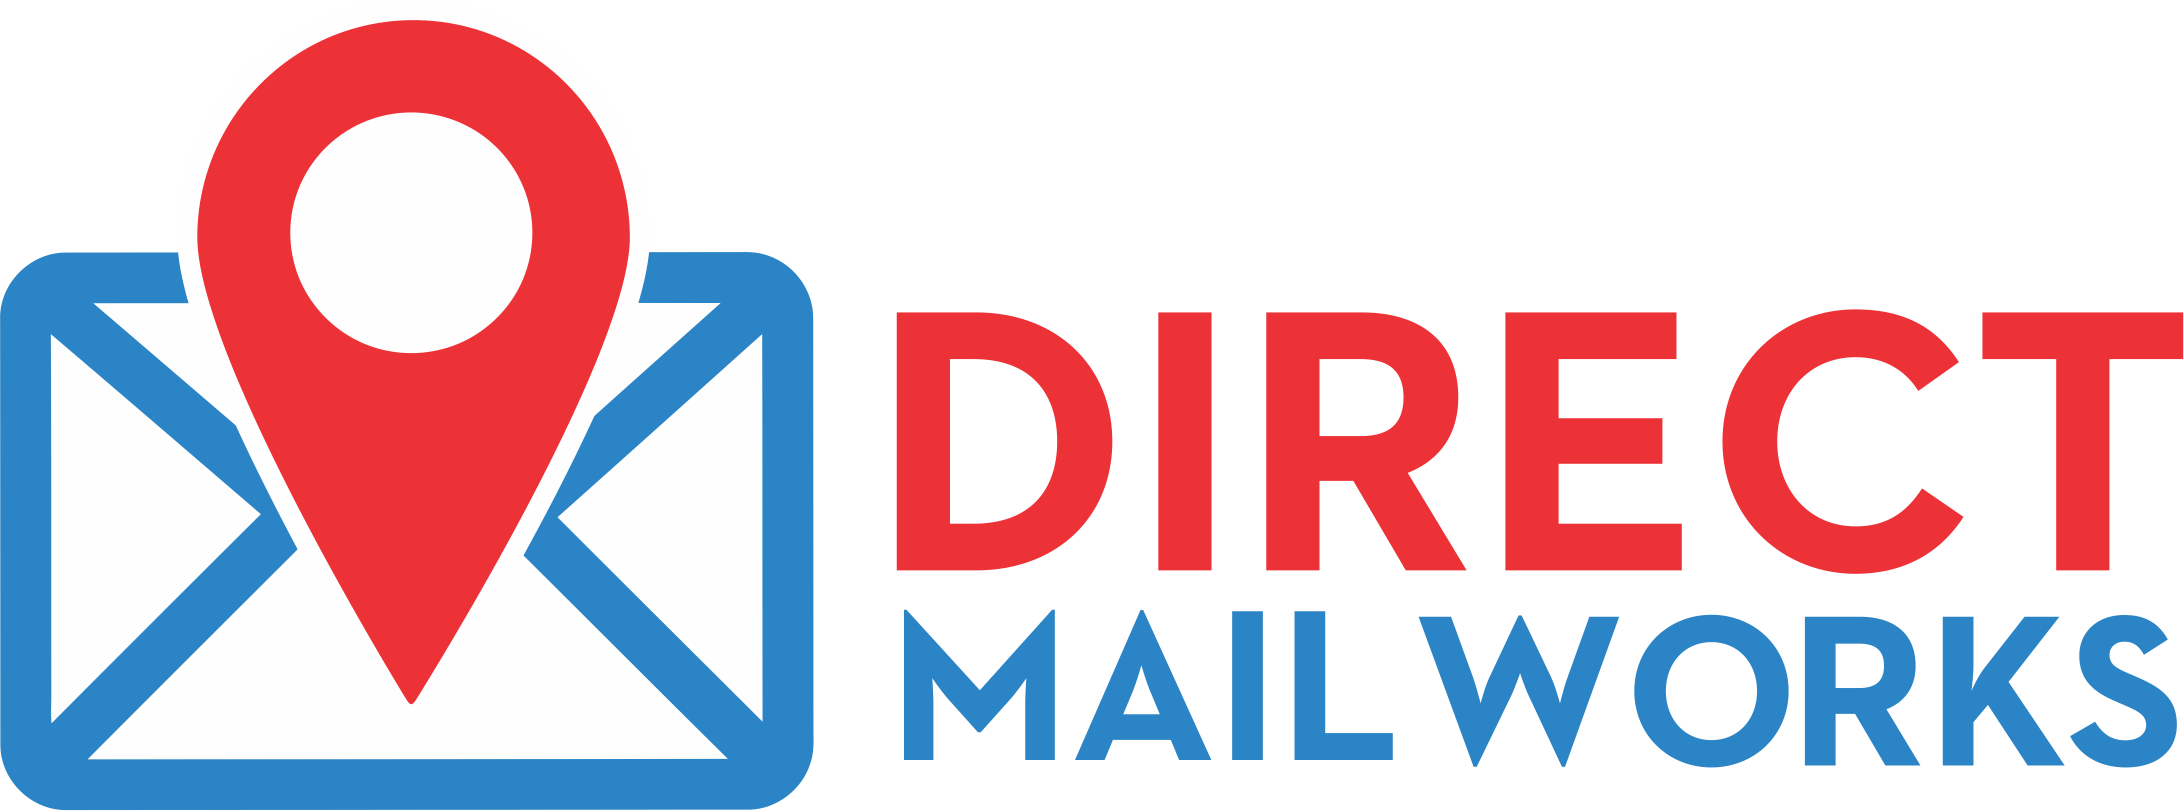 Direct Mail Works logo